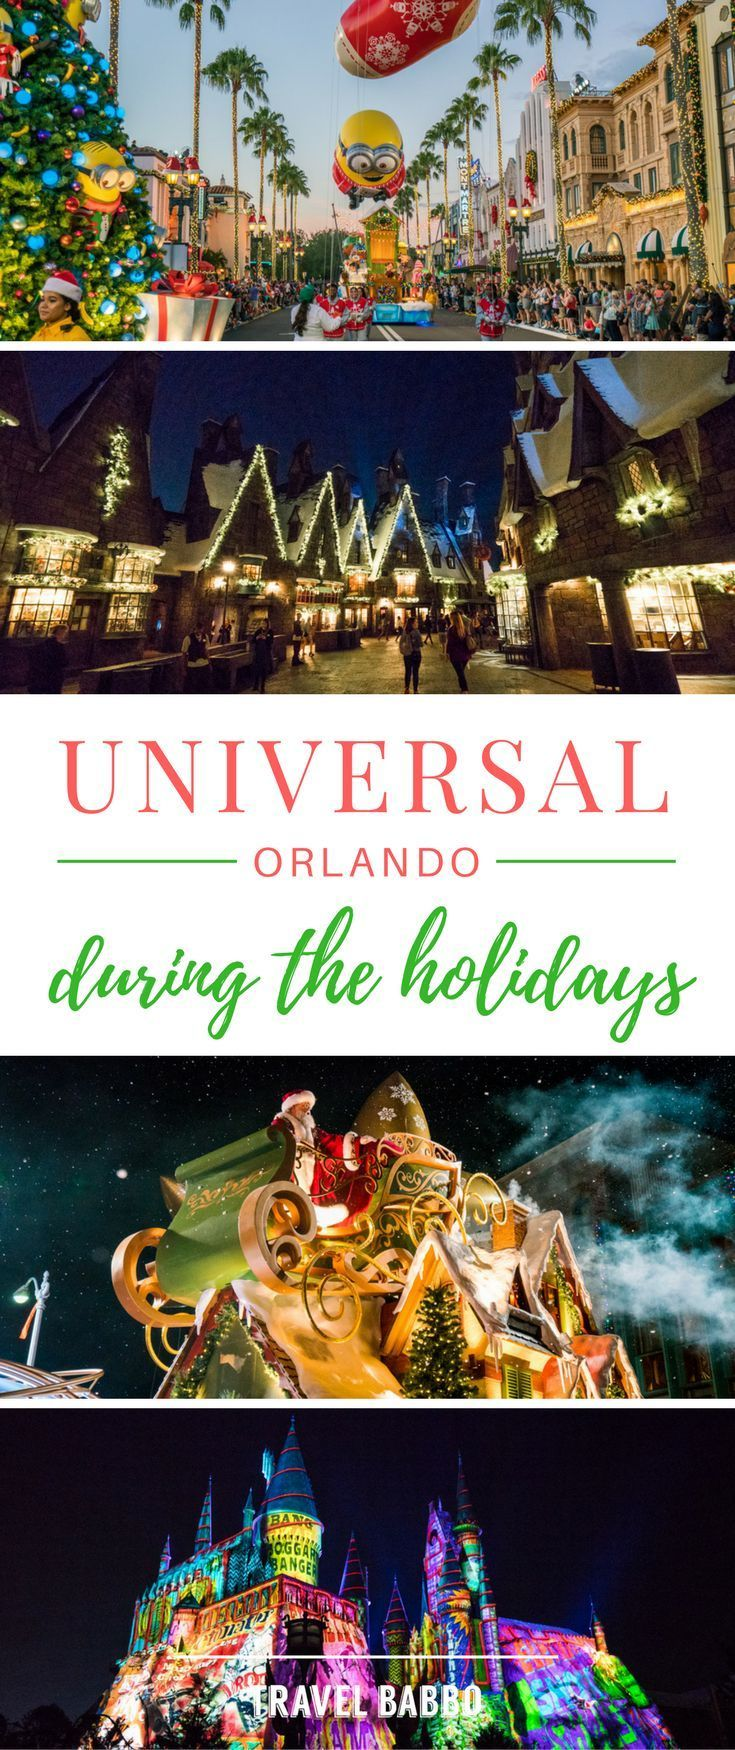 Universal Orlando During the Holidays- If you are #planning a trip to Universal in Orlando, #Florida, #withkids, you may want to consider going during the holiday season! Special character breakfasts, light shows and beautiful decorations everywhere are just a few reasons why we love Universal at Christmas! Check out the rest of my #tips on why Universal is so magical during the #holidays!